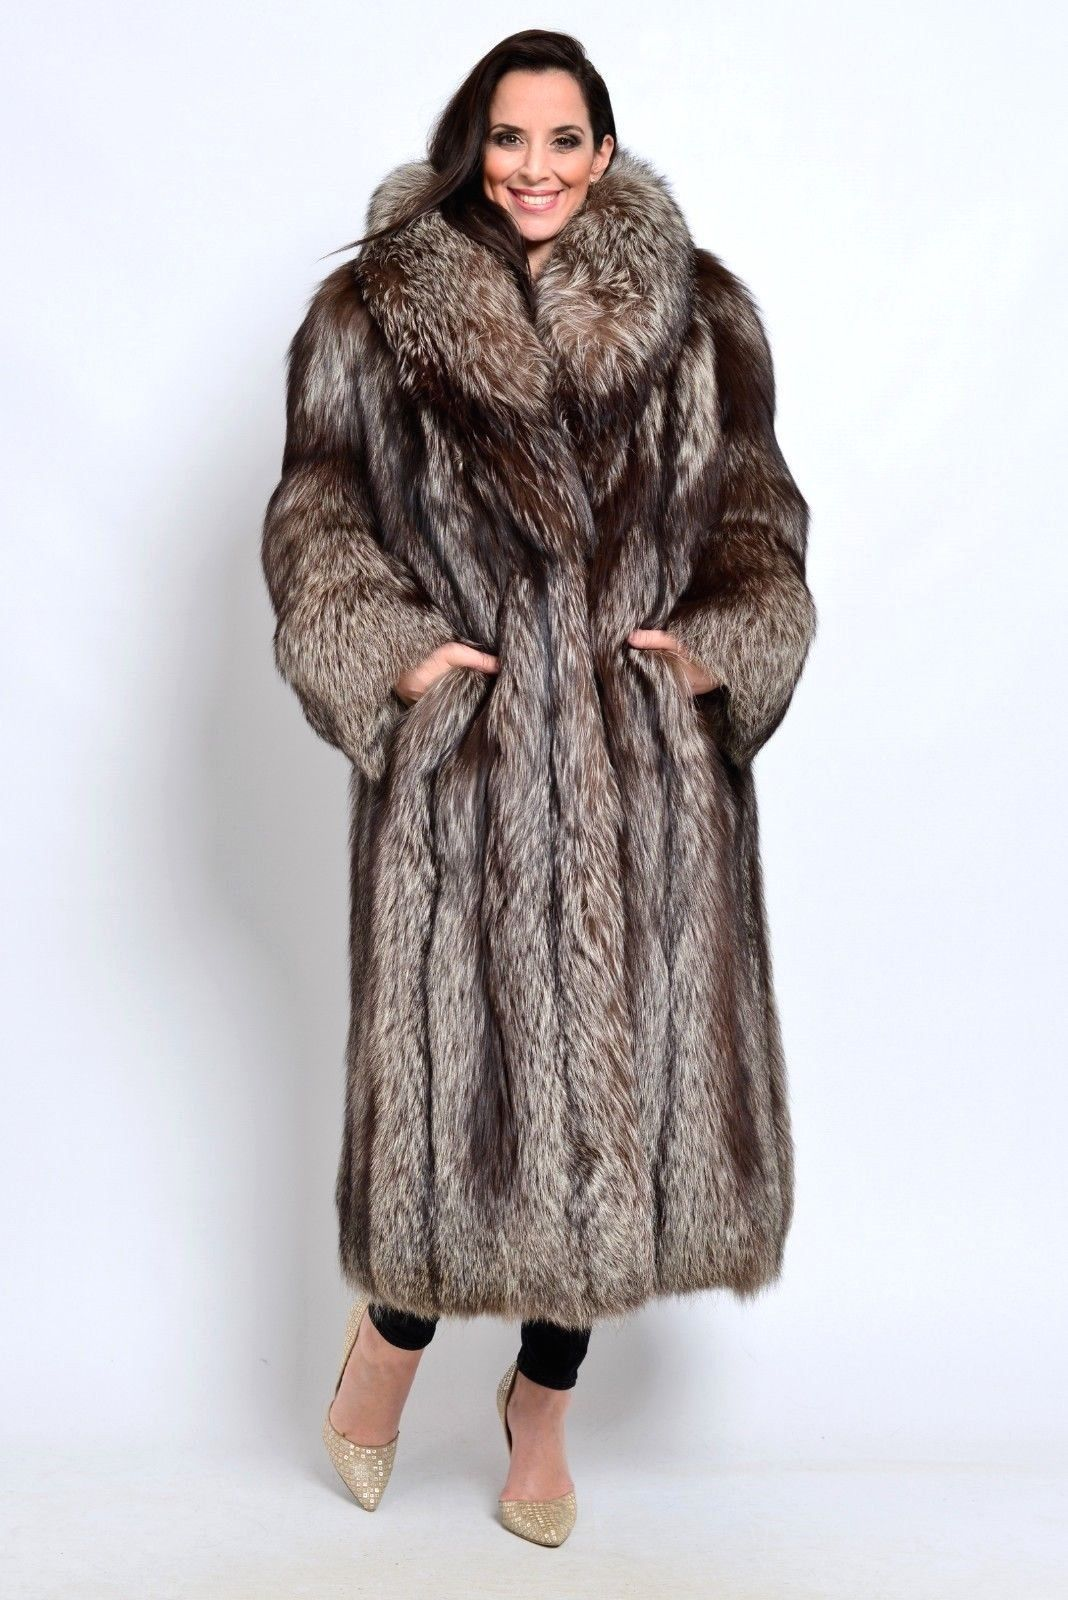 SILVER FOX FUR COAT LET OUT CLASS OF BLUE BLUE RED